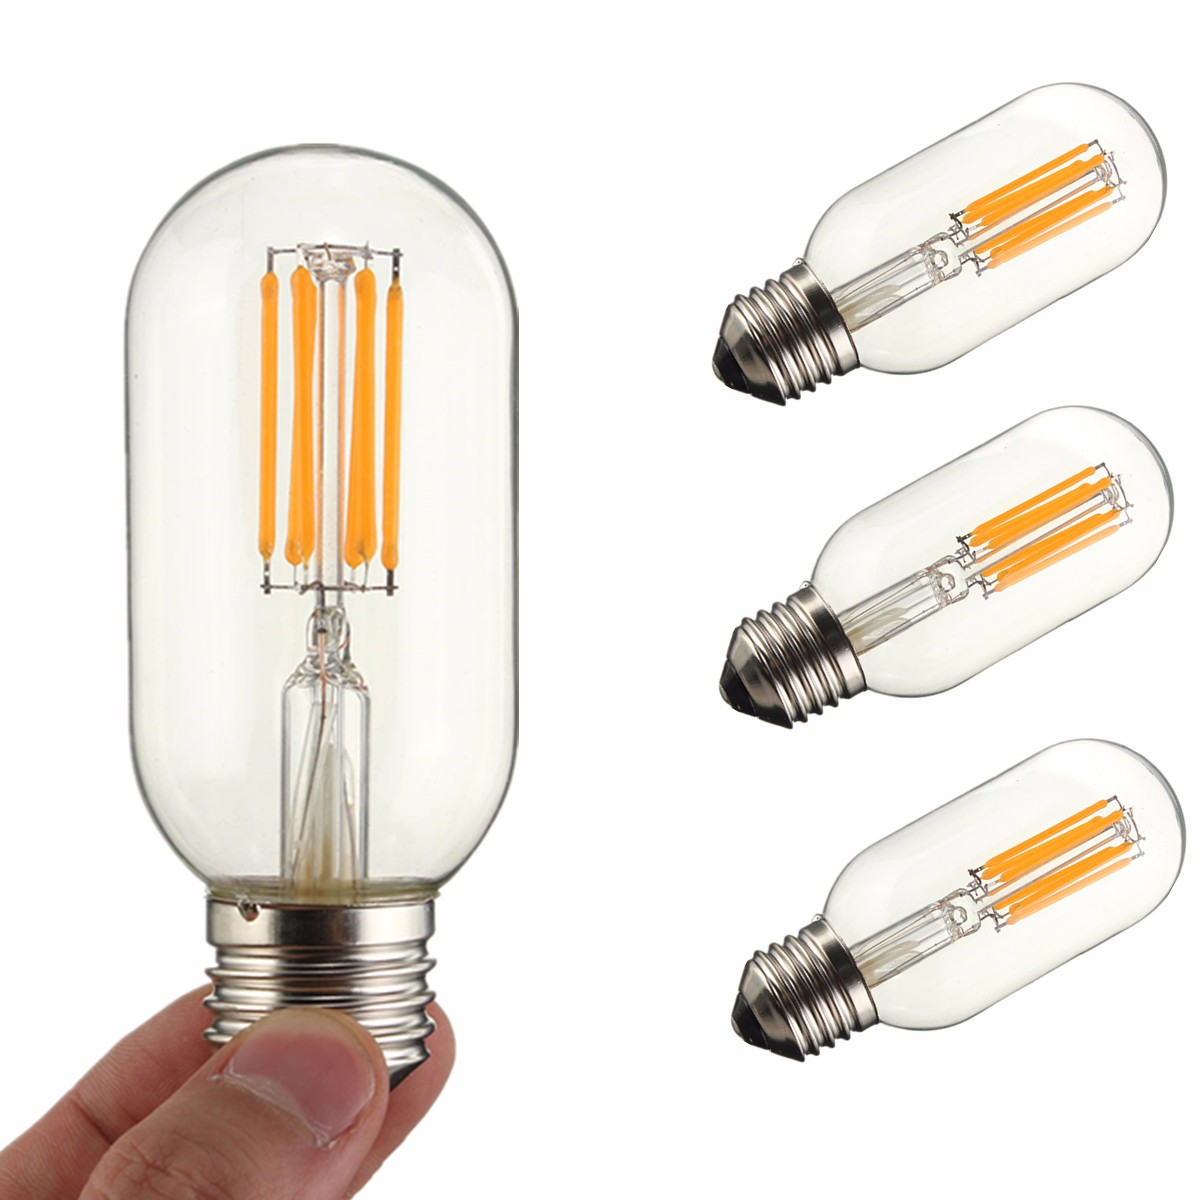 A19 Bulb Vs E26 Bulb Whats The Difference Lighting